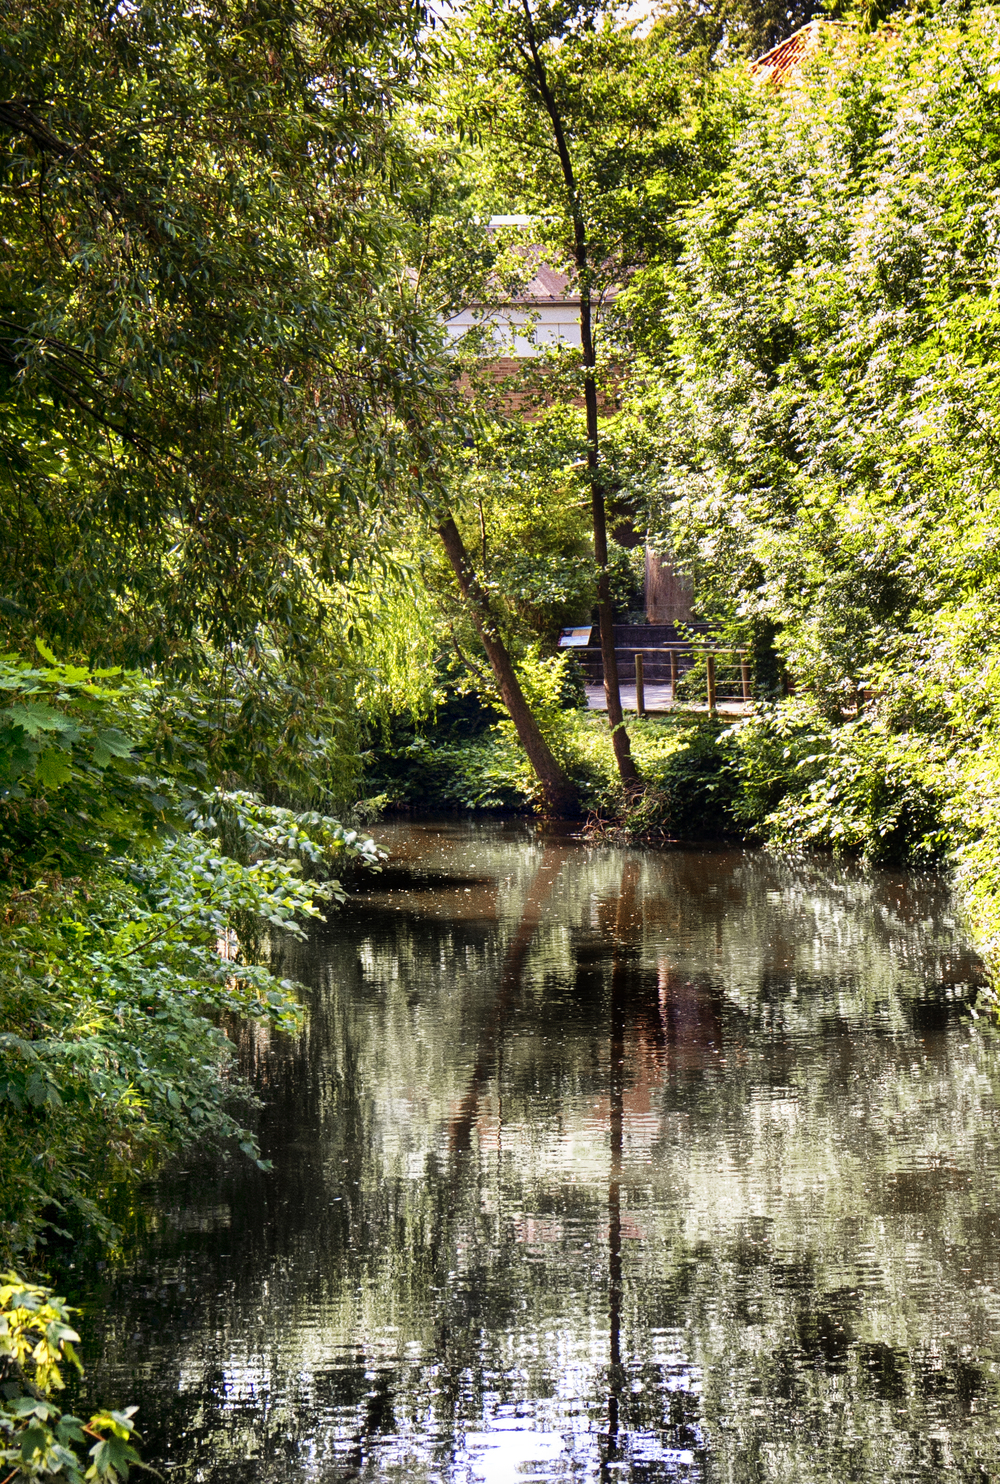 Stream through the city Odense Comments